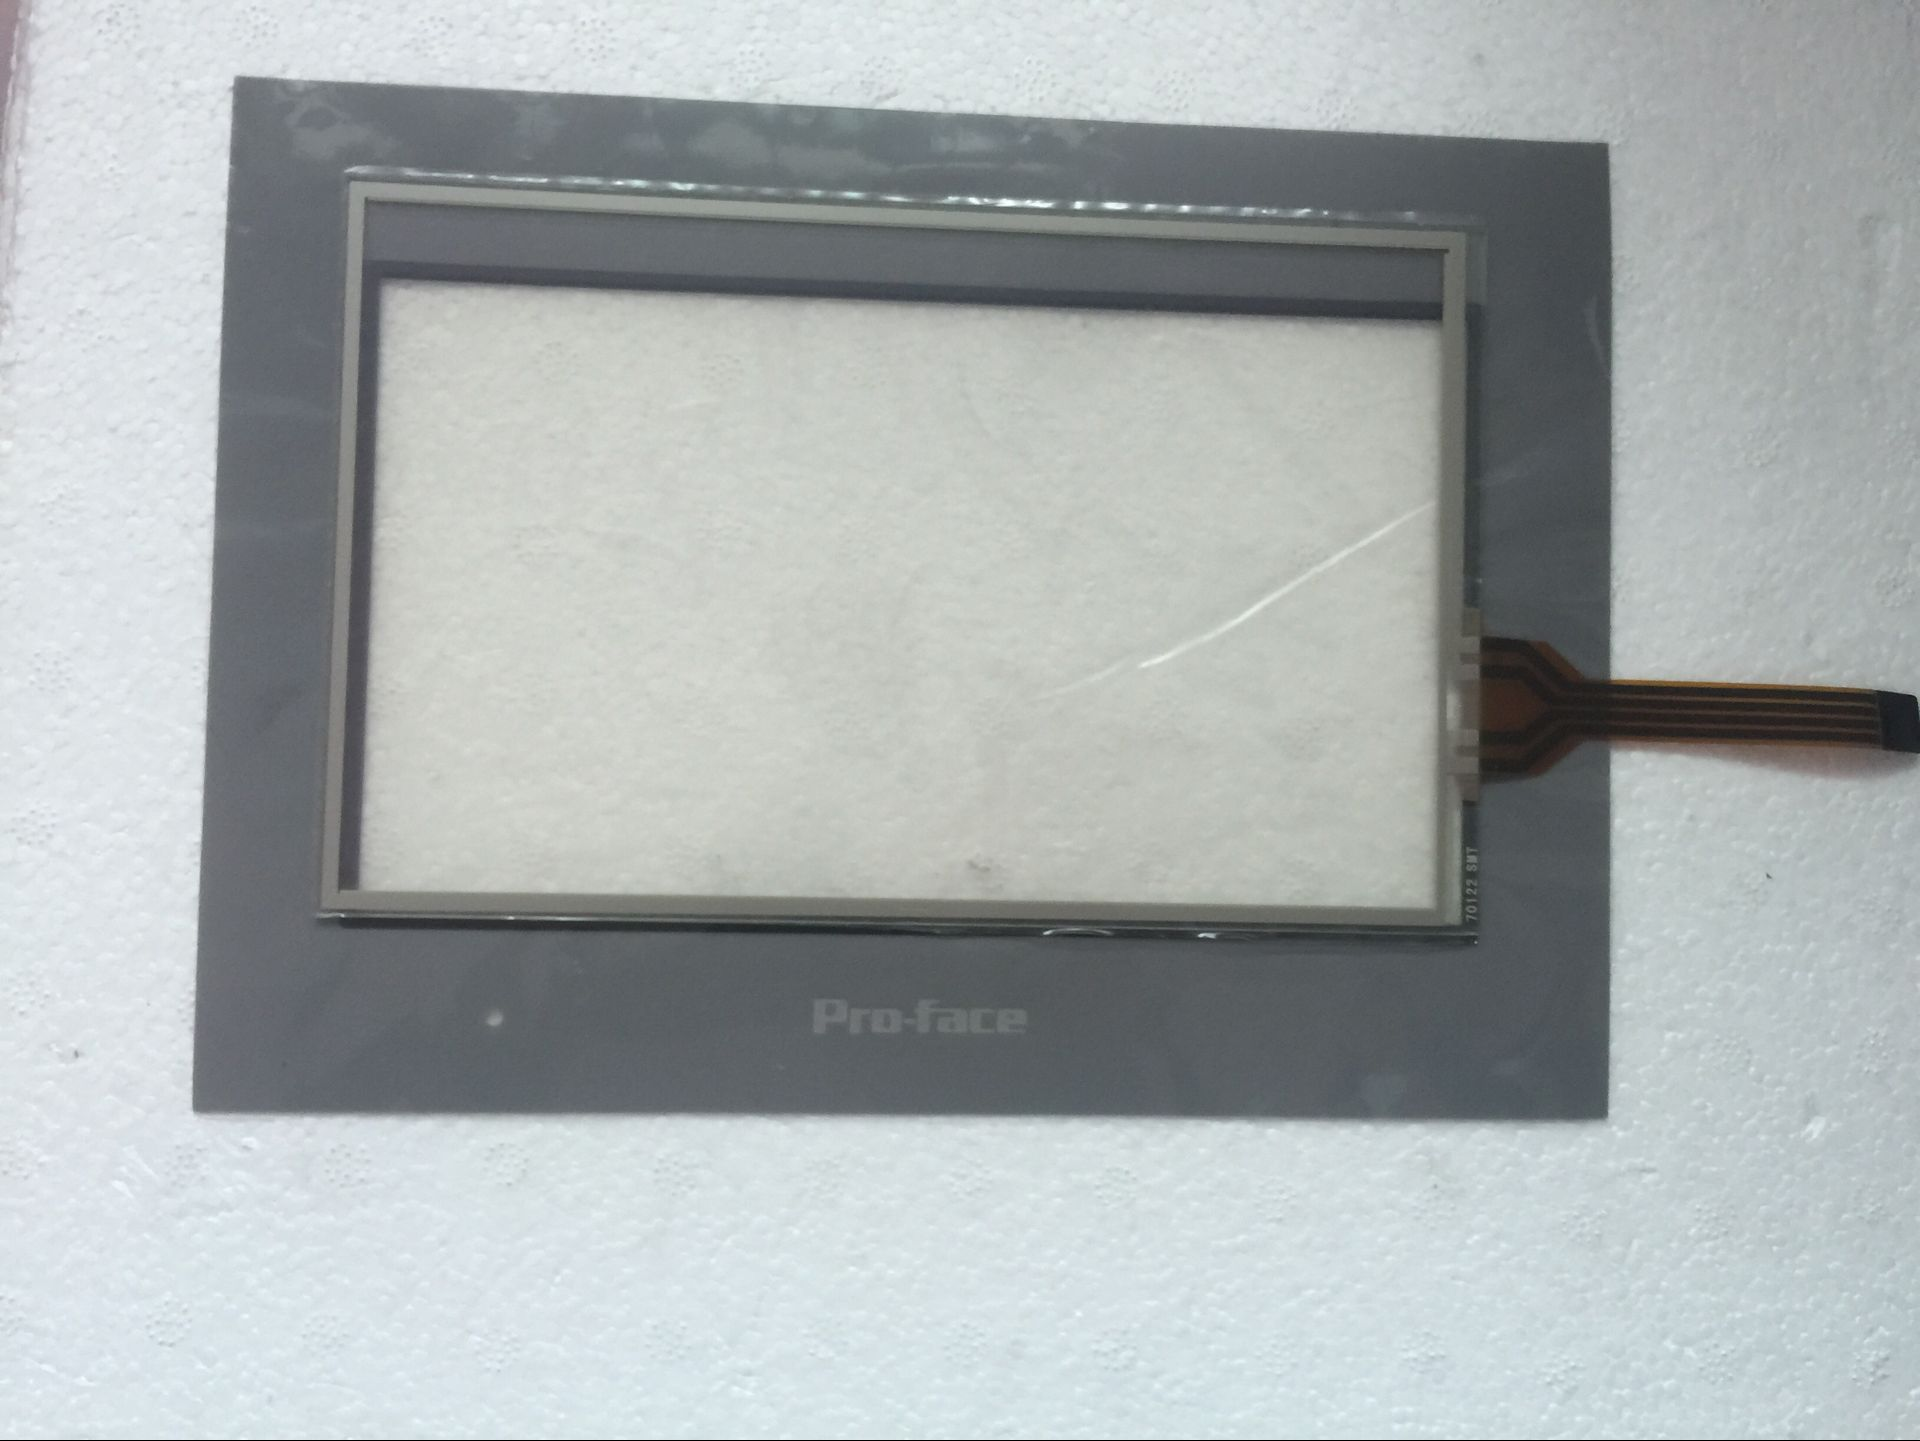 PFXGE4408WAD GC 4408W 7 inch Touch Screen Glass Membrane film for HMI Panel repair do it